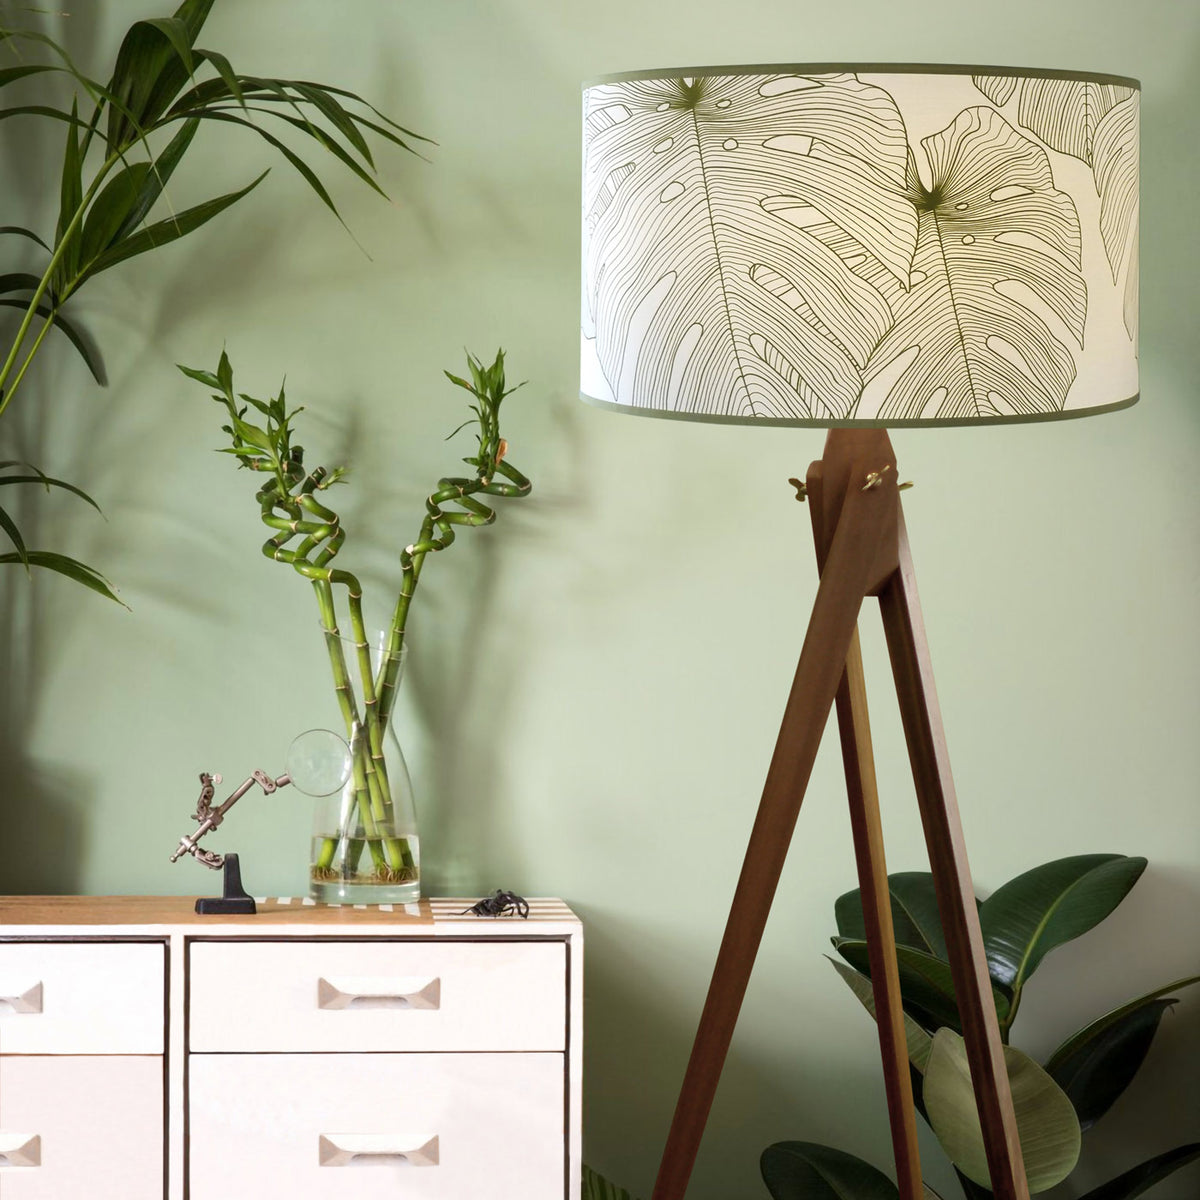 Menstruosa Floor Lamp - objects of interest